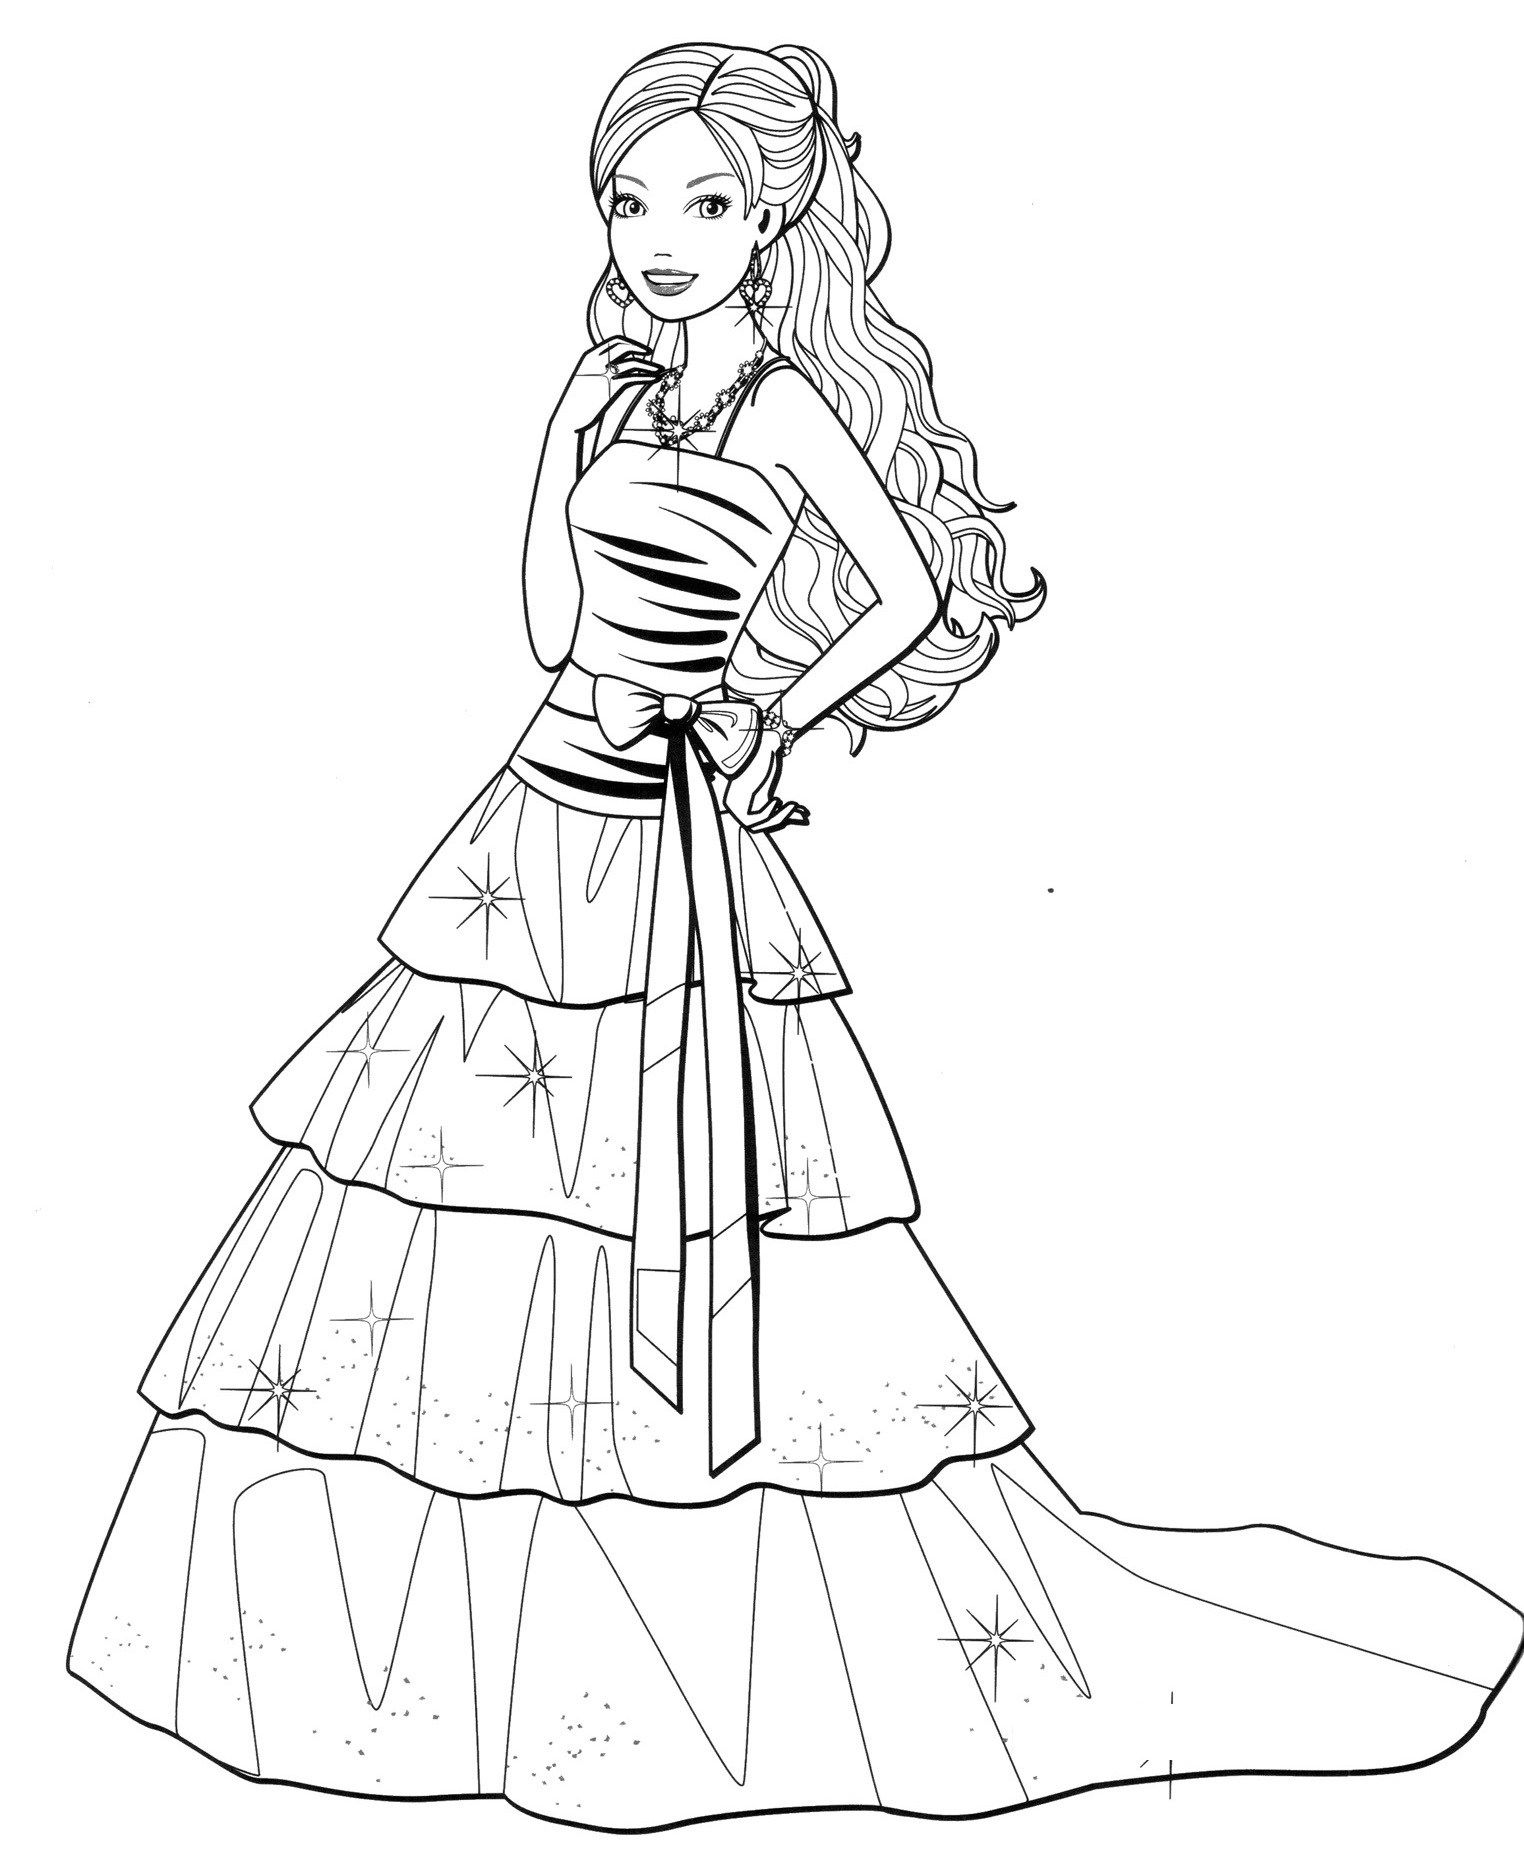 fashion barbie coloring pages barbiefashioncoloringpages44 free coloring pages and barbie pages coloring fashion